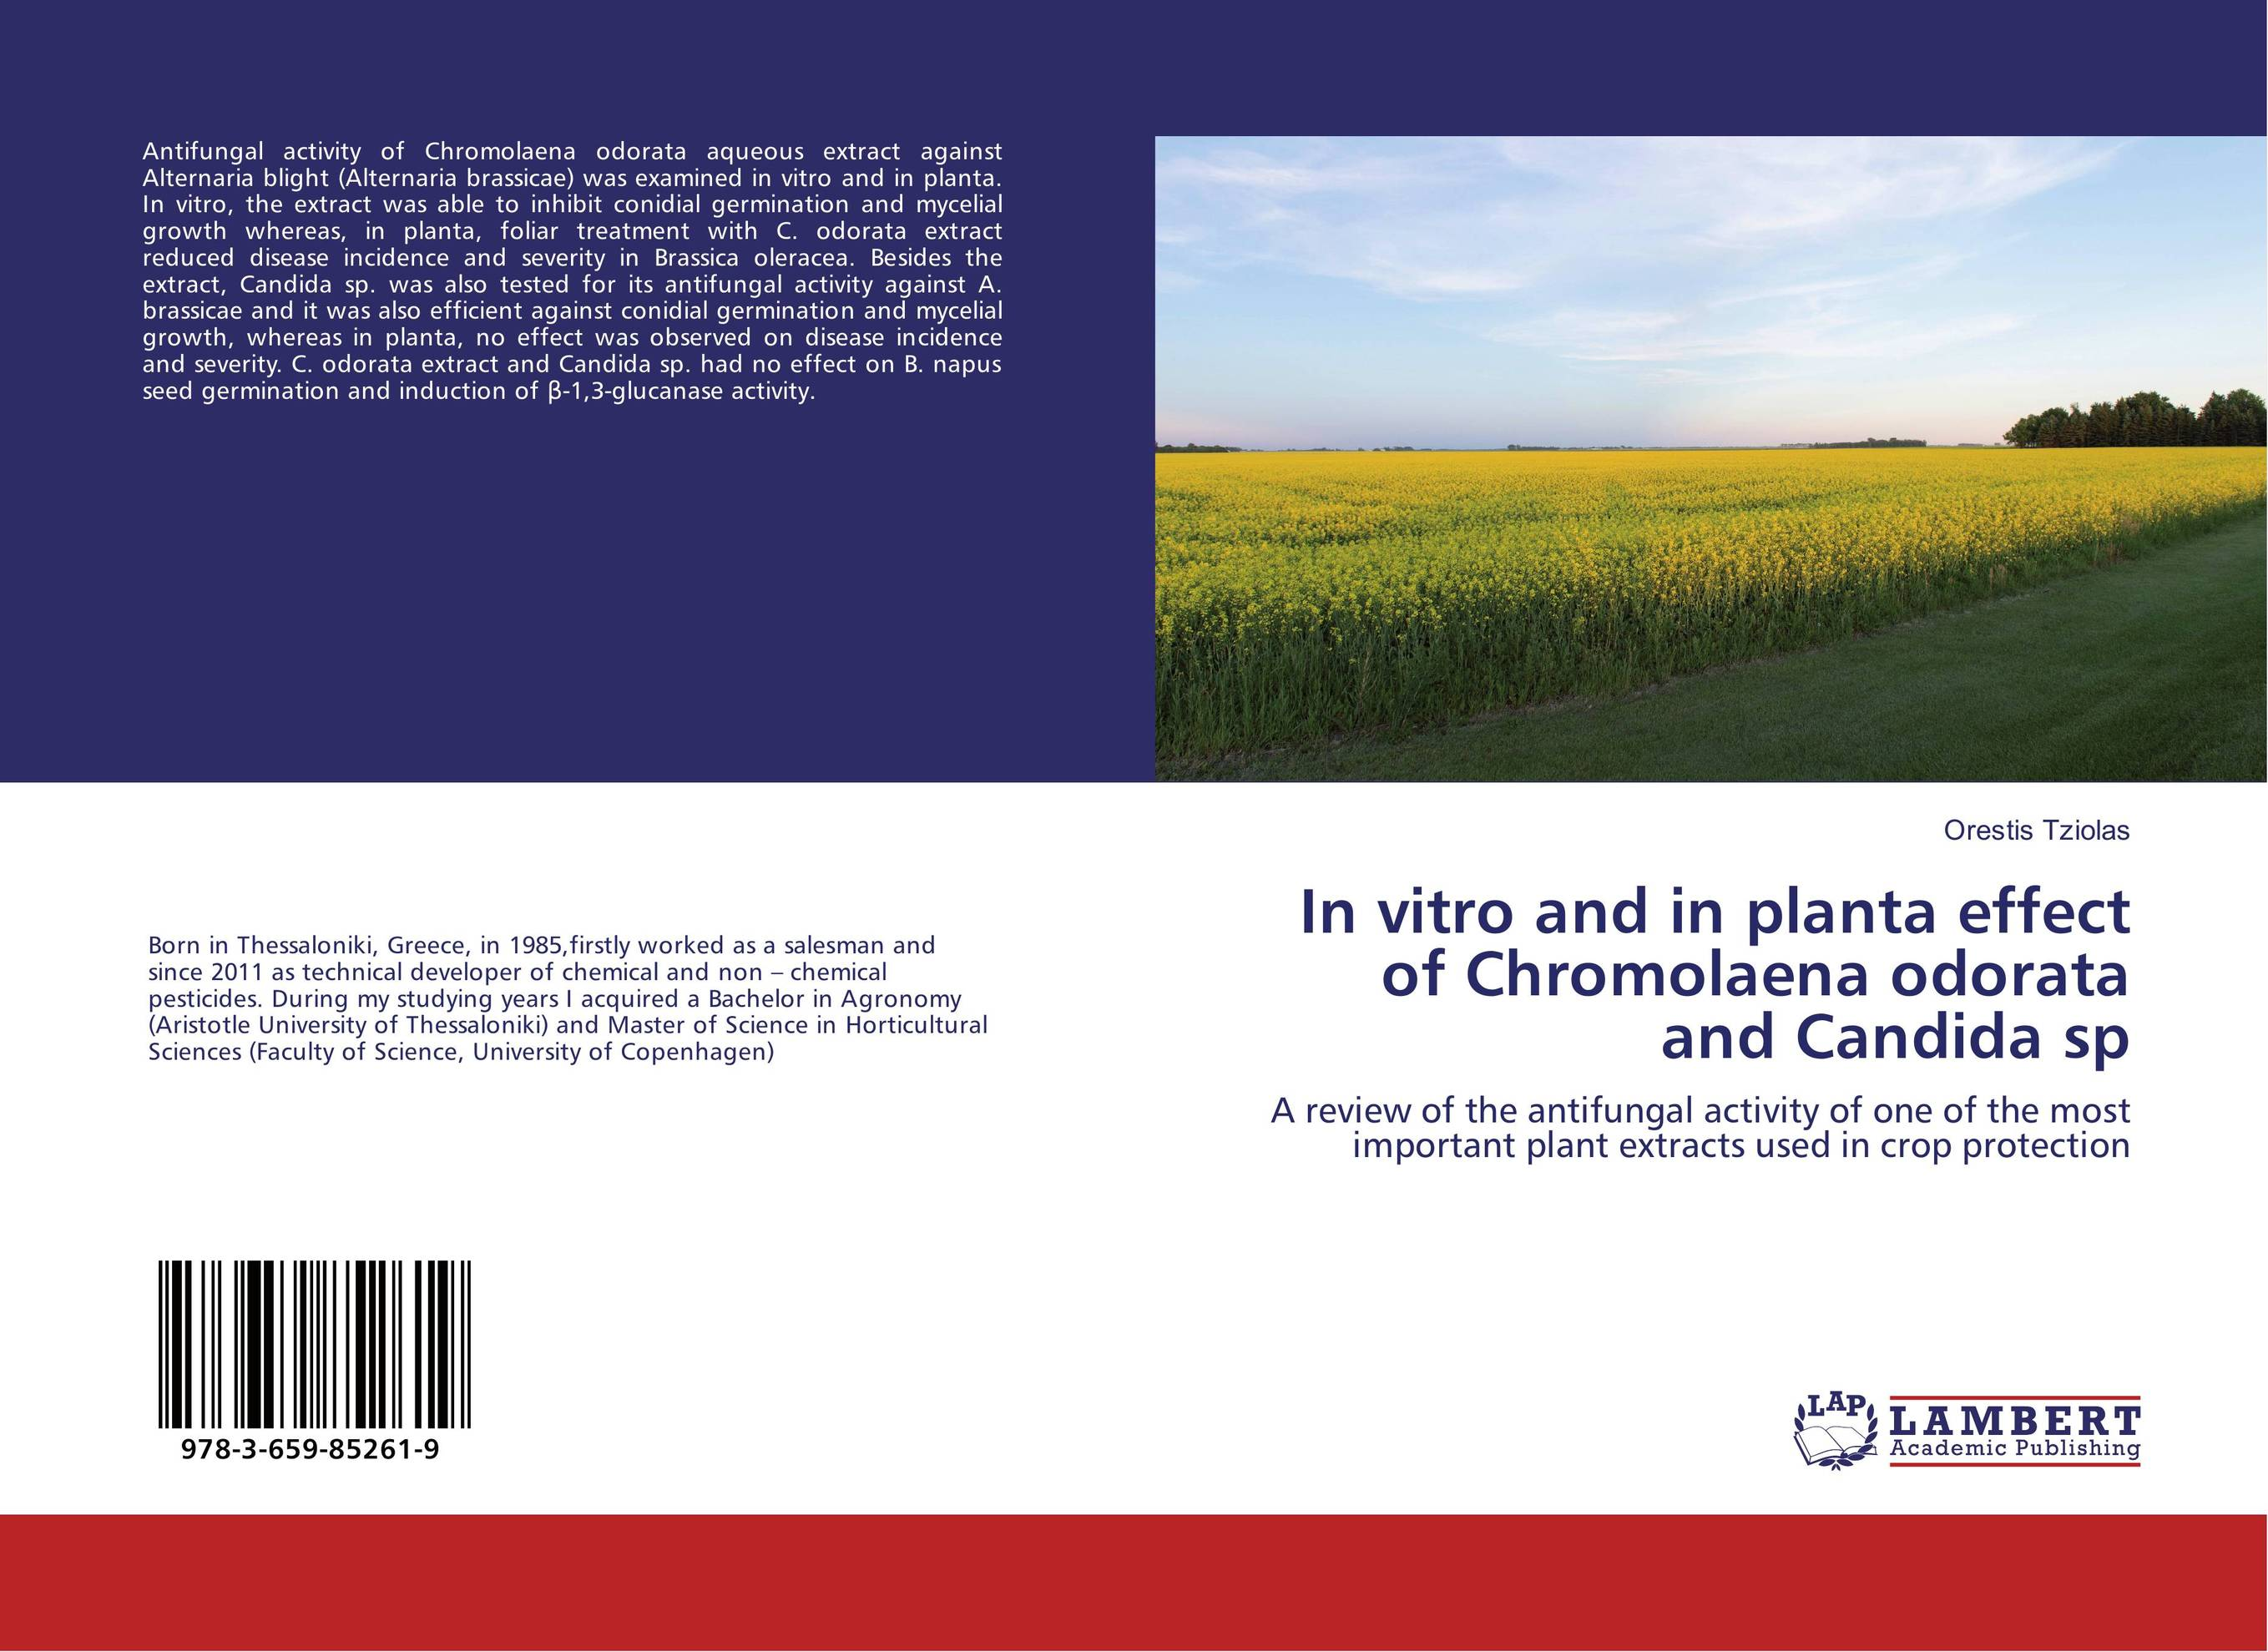 In vitro and in planta effect of Chromolaena odorata and Candida sp effect of plant extracts on alternaria brassicae in mustard